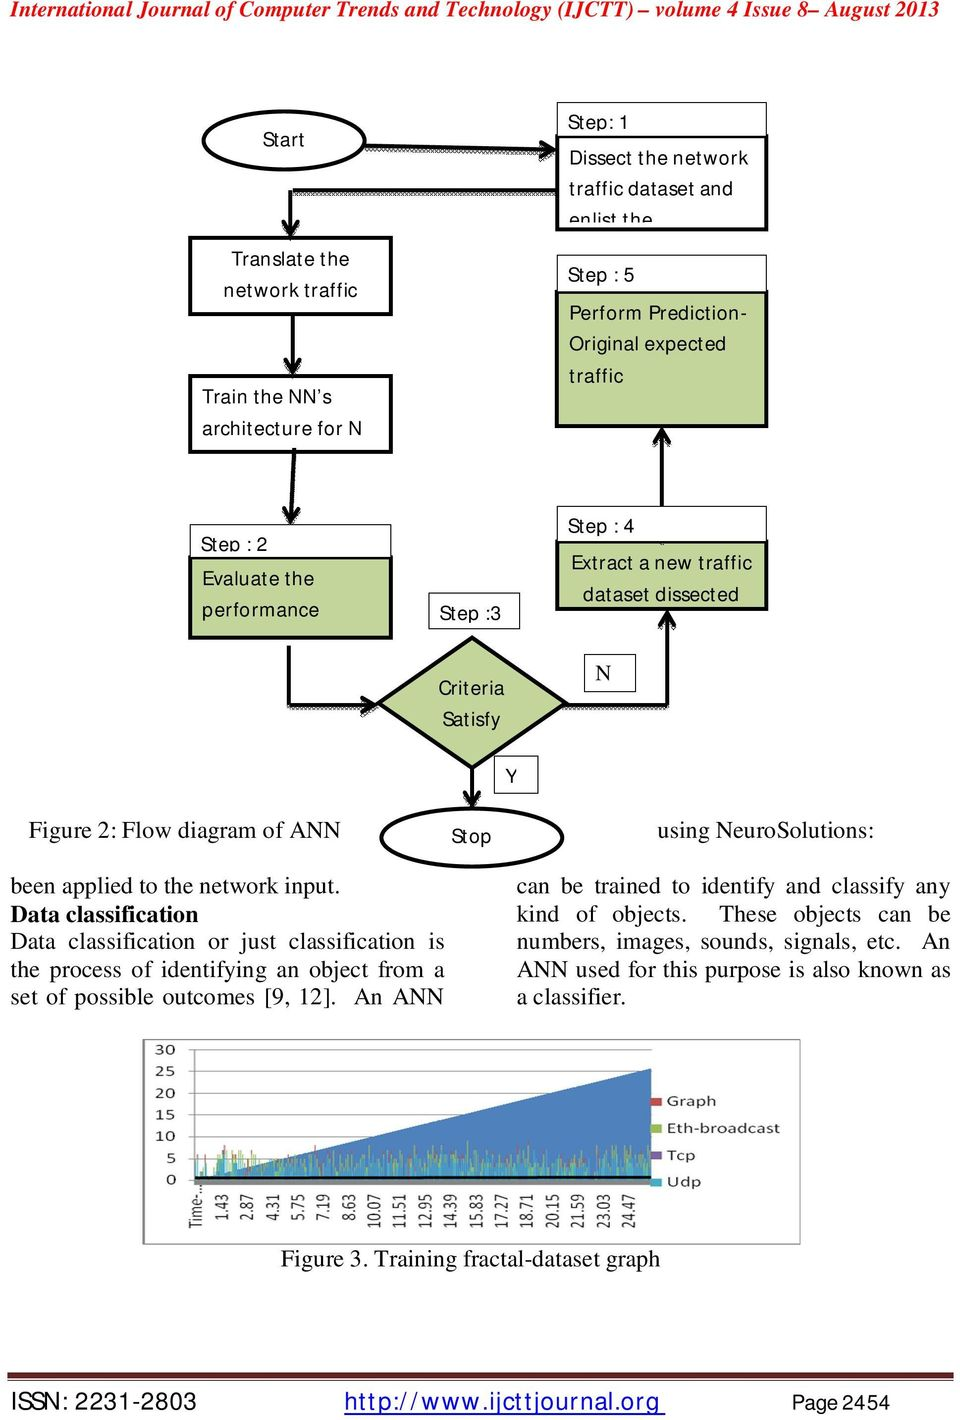 traffic dataset dissected N Y Figure 2: Flow diagram of ANN been applied to the network input.